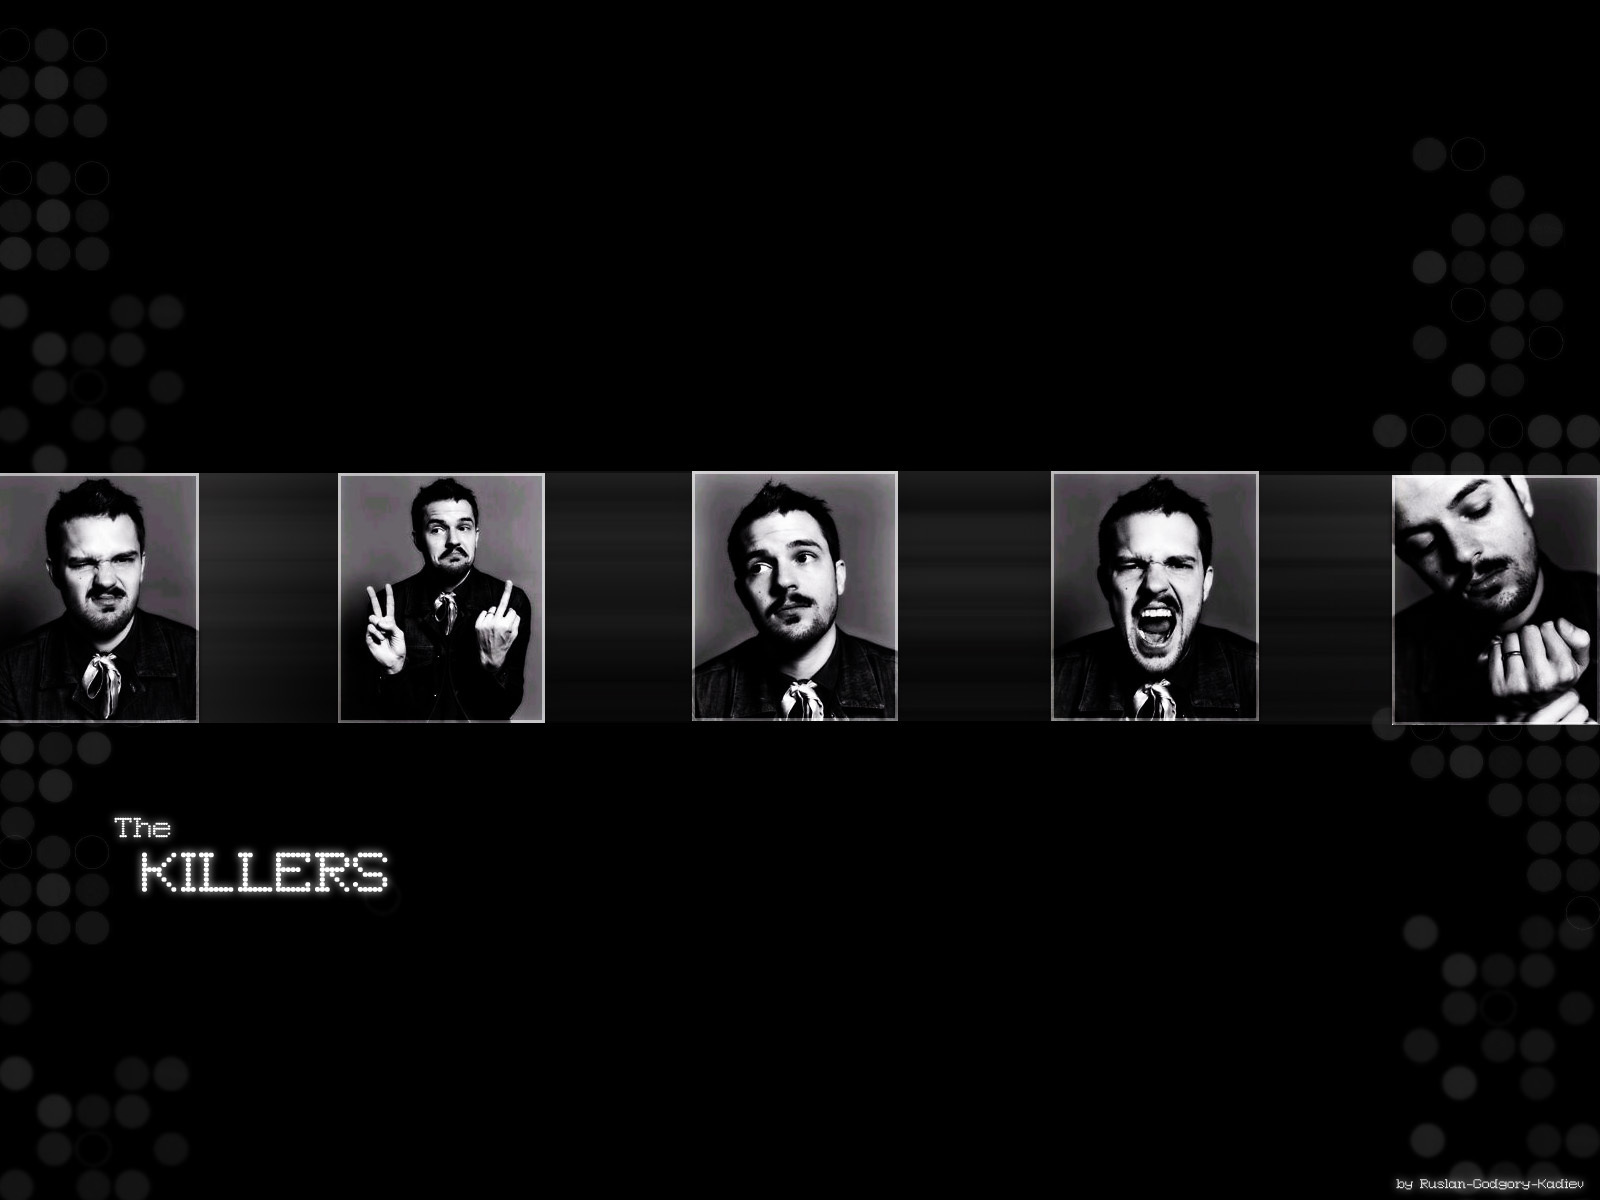 The Killers  The Killers Wallpaper (3418938)  Fanpop